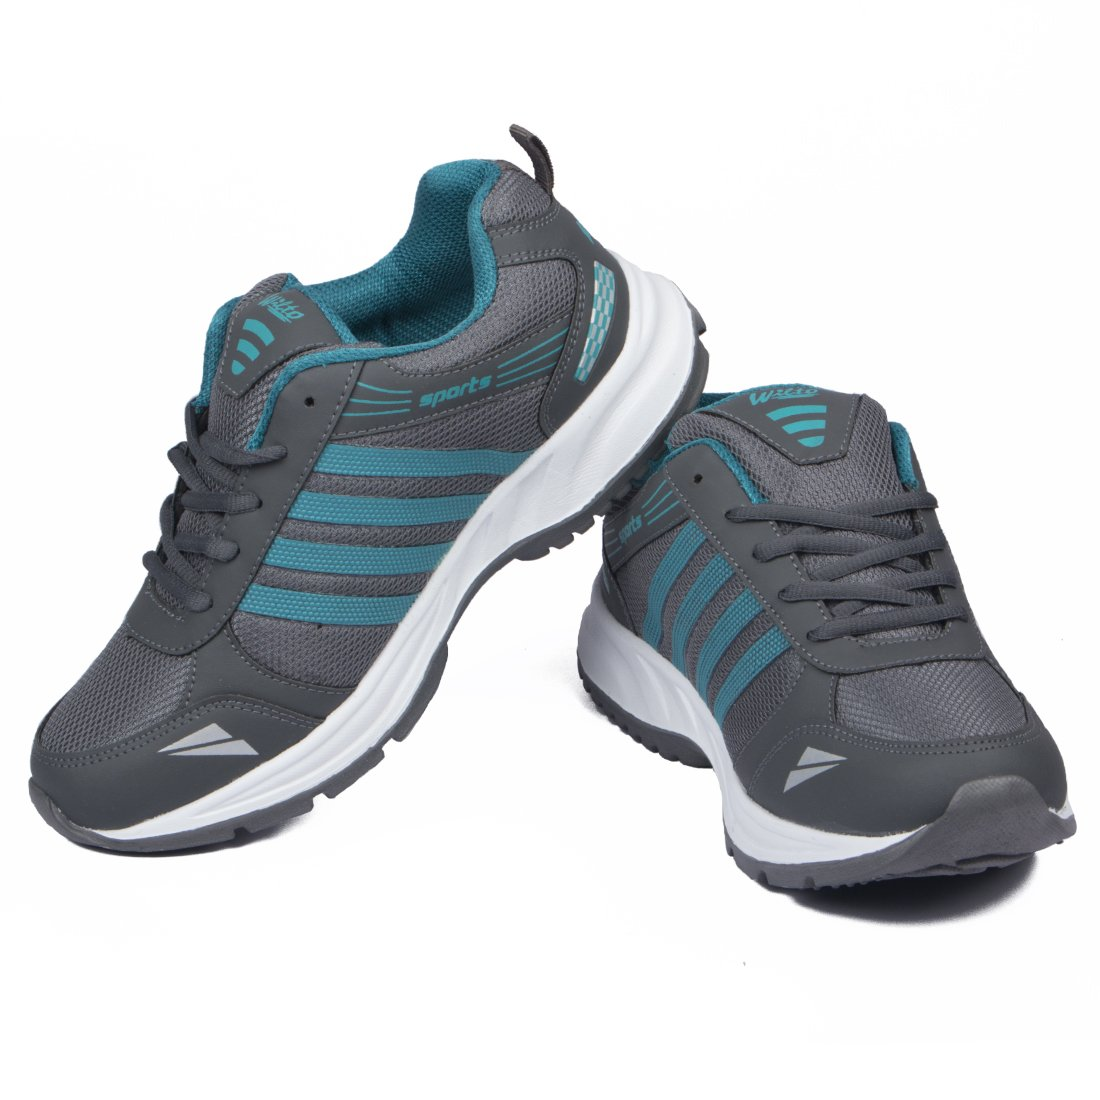 ASIAN Jio-13 Sports Shoes,Gym Shoes,Training Shoes,Sports Shoes,